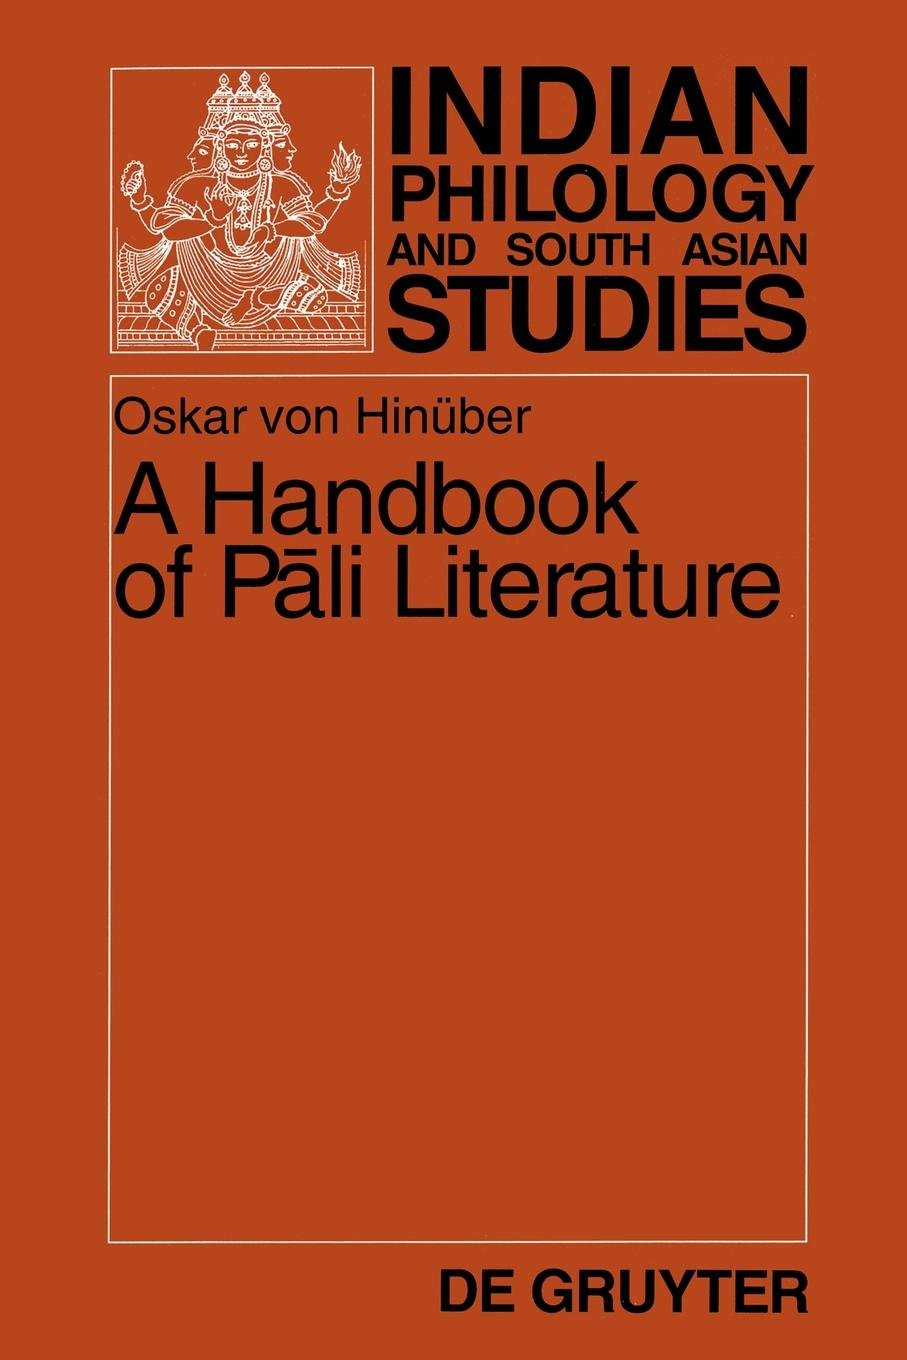 A Handbook of Pali Literature (Indian Philology and South Asian Studies) (English and German Edition) pdf epub